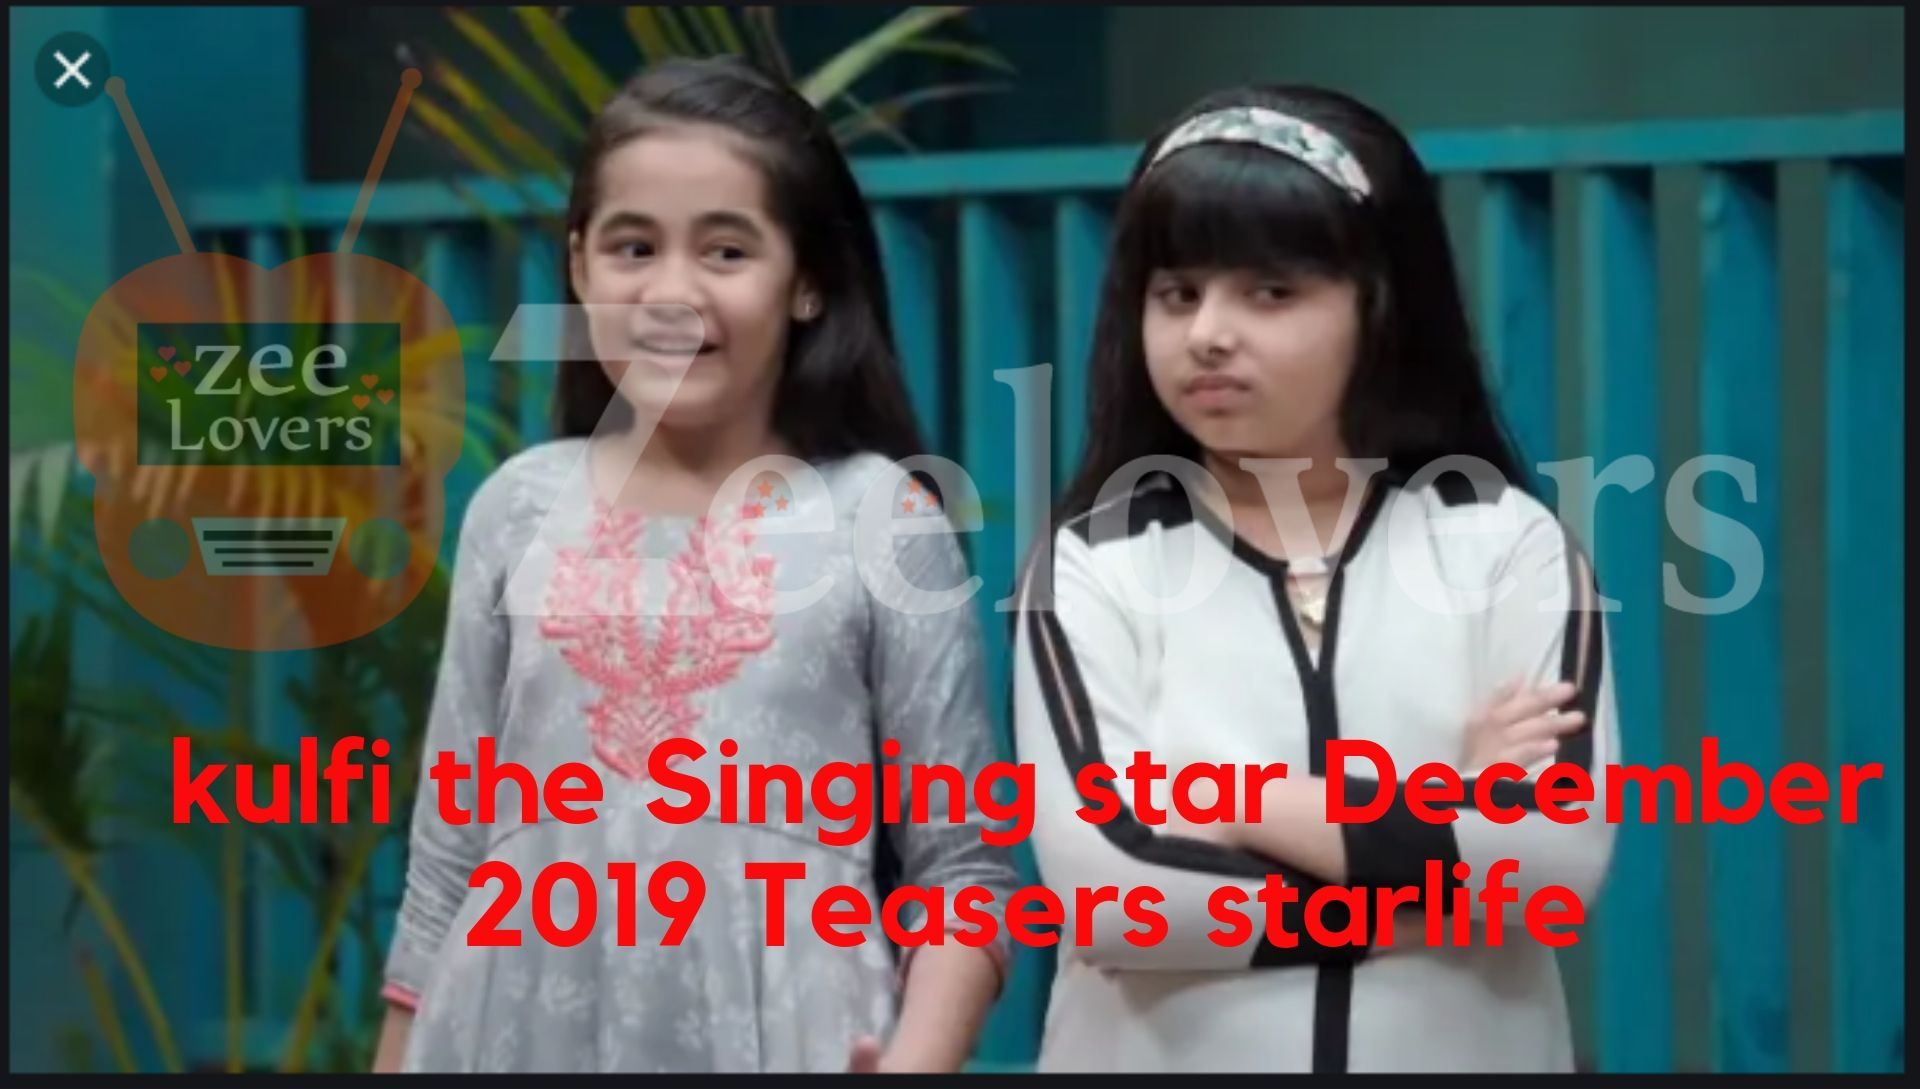 kulfi the Singing star December 2019 Official Teasers starlife